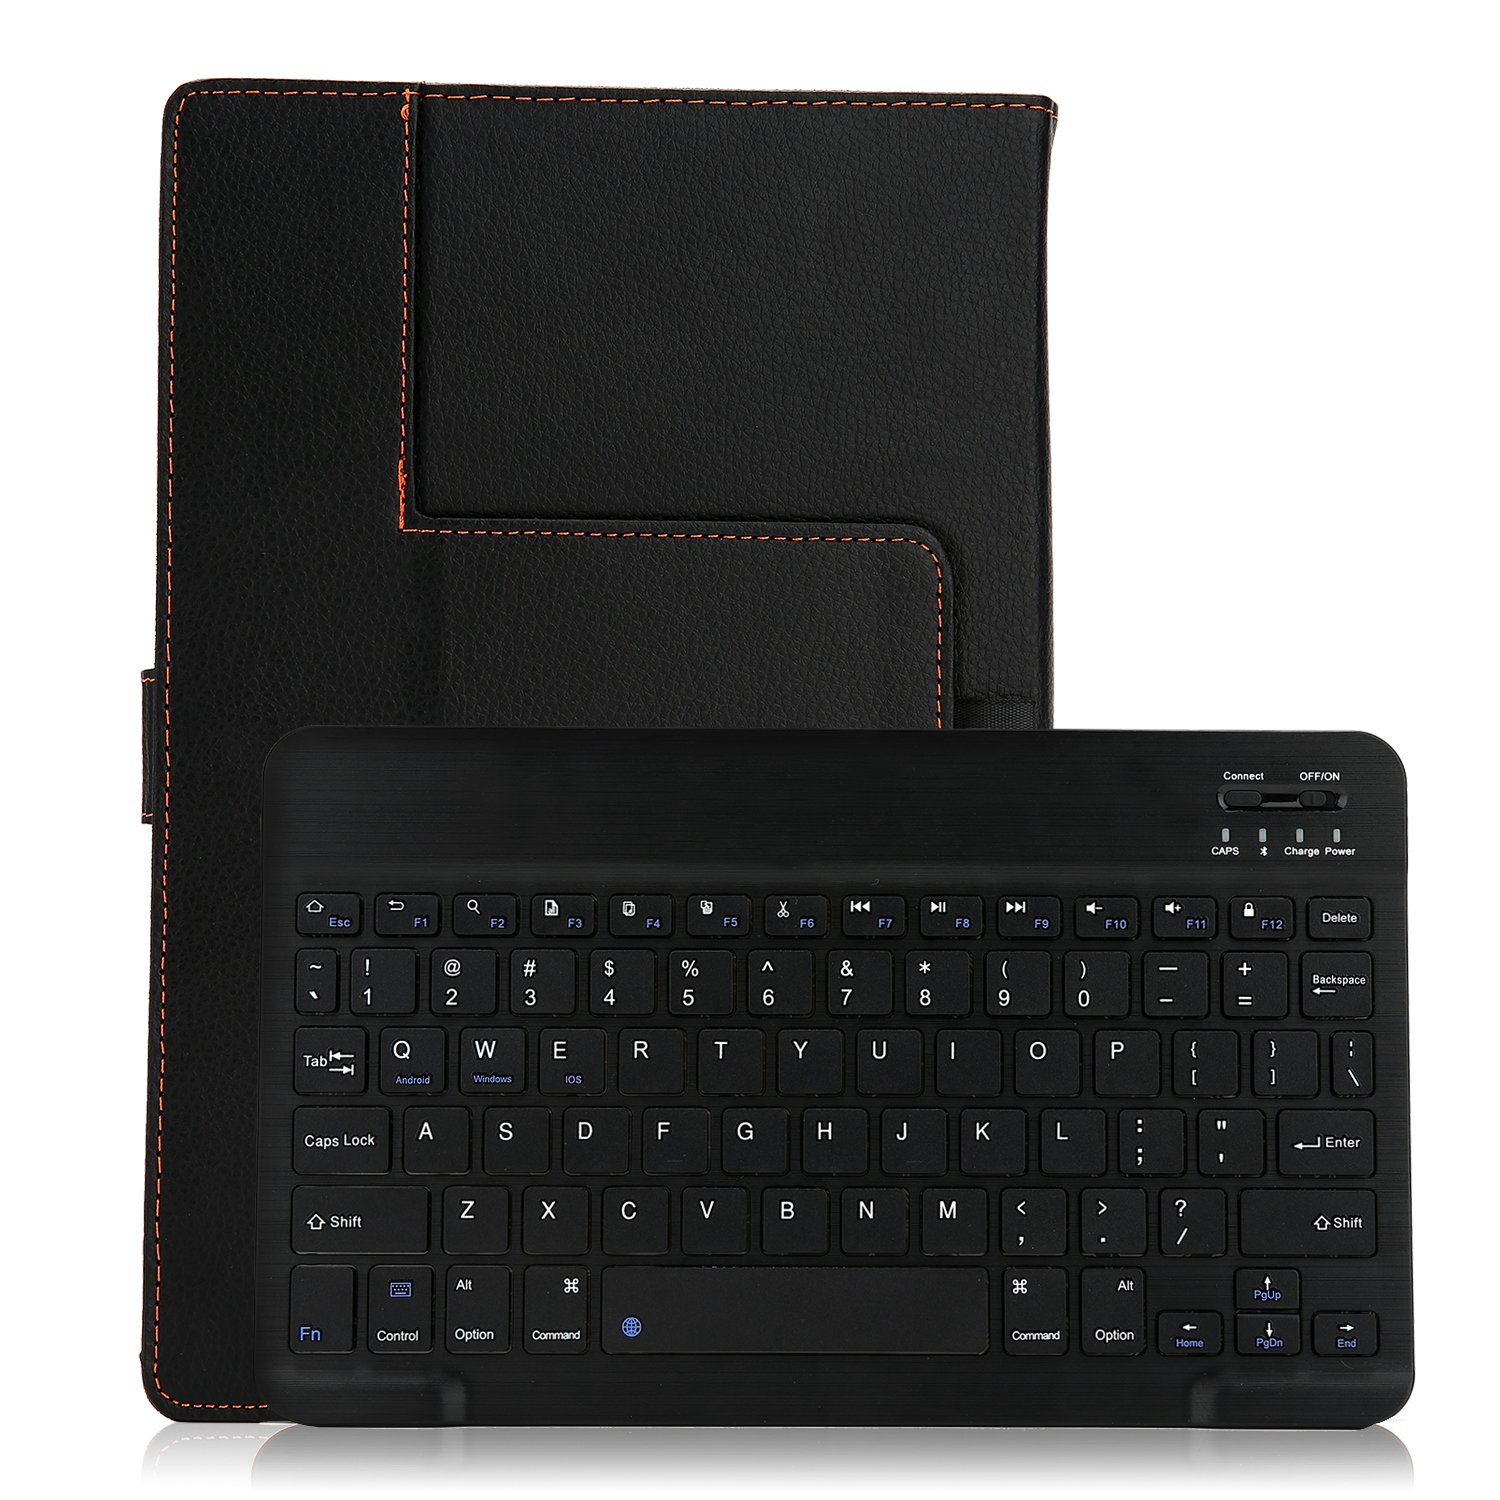 Vacio PU Leather Smart Case Stand Folio Cover with Detachable Wireless Bluetooth Keyboard 9-10.1 inch Android Microsoft for Xiaomi Huawei Apple Samsung Lenovo ASUS LG Toshiba 9-10.1-inch Tablet PC by Vacio